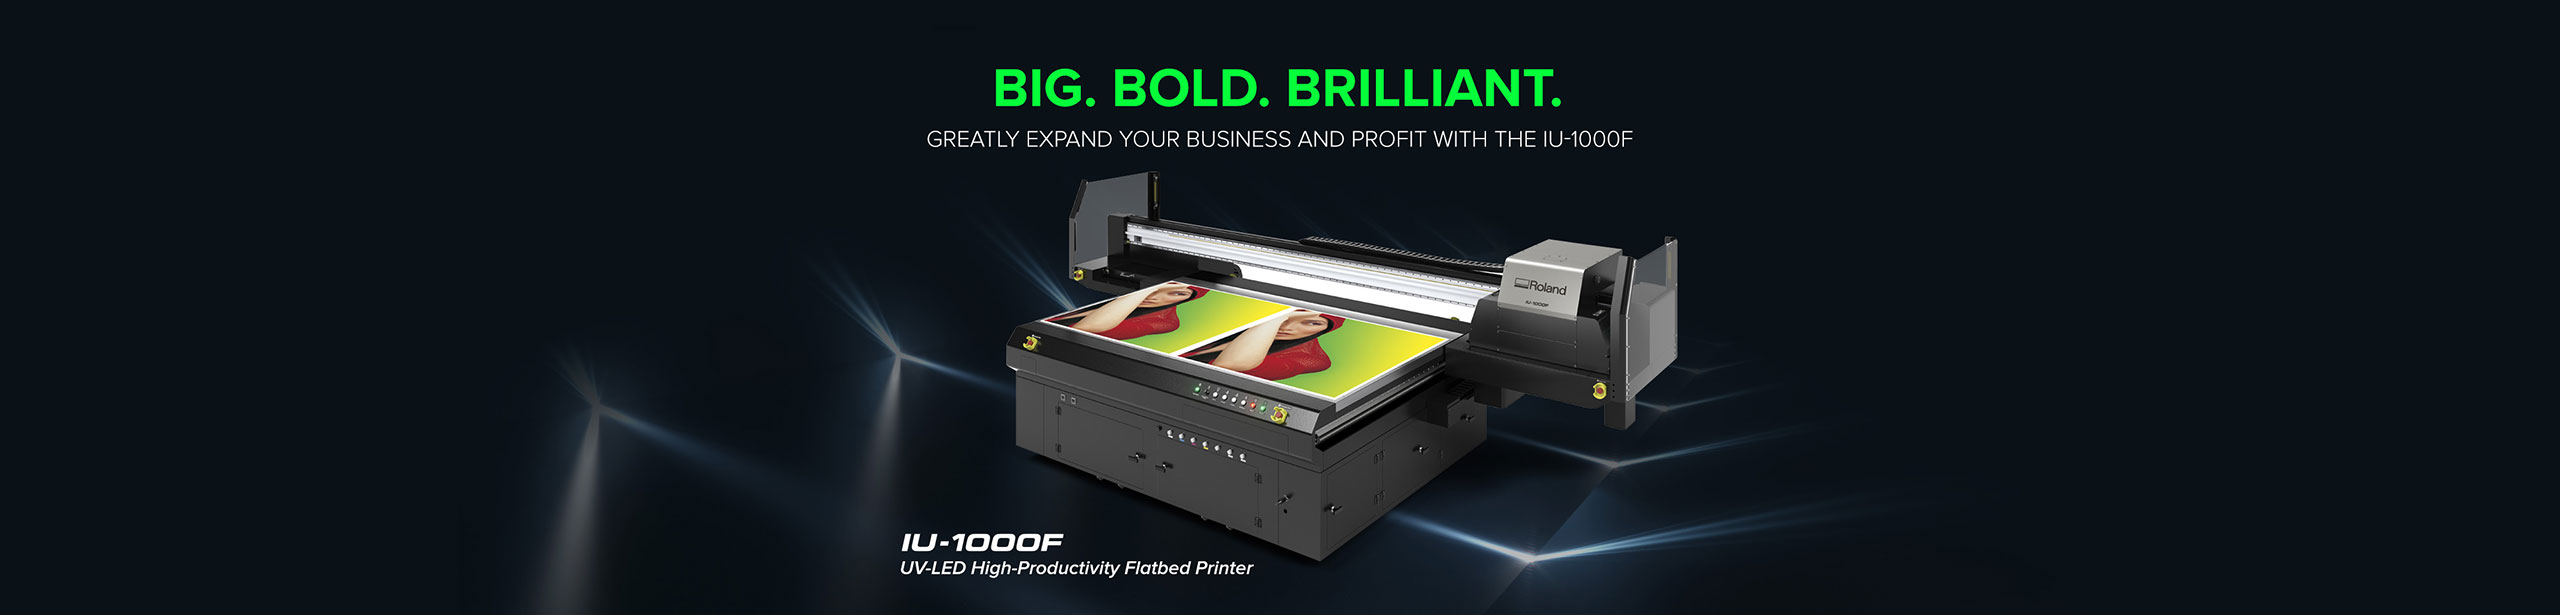 Roland UV LED Flatbed printer IU-1000F